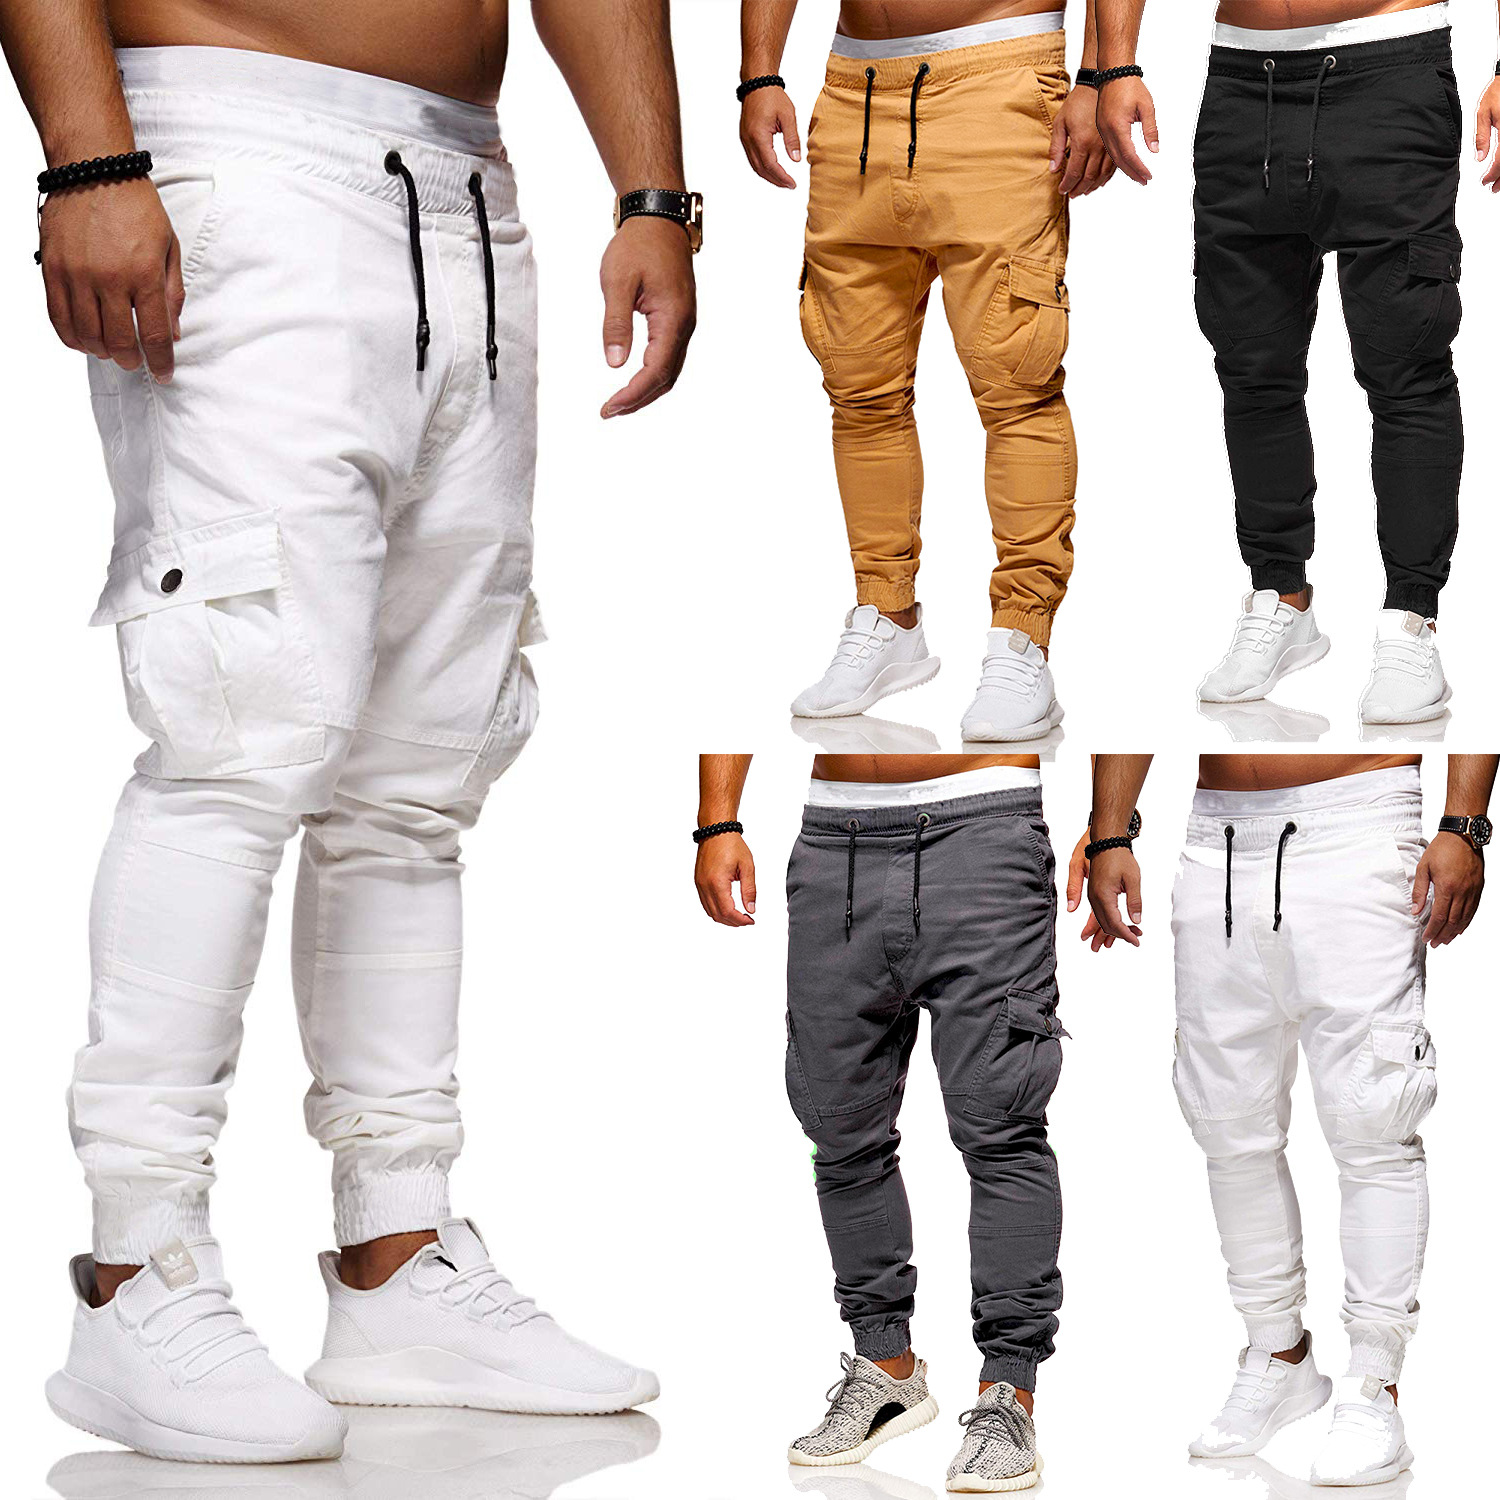 2018 Autumn And Winter New Style Europe And America Men Classic Patch Pocket With Drawstring Ankle Banded Pants Simple Solid Col